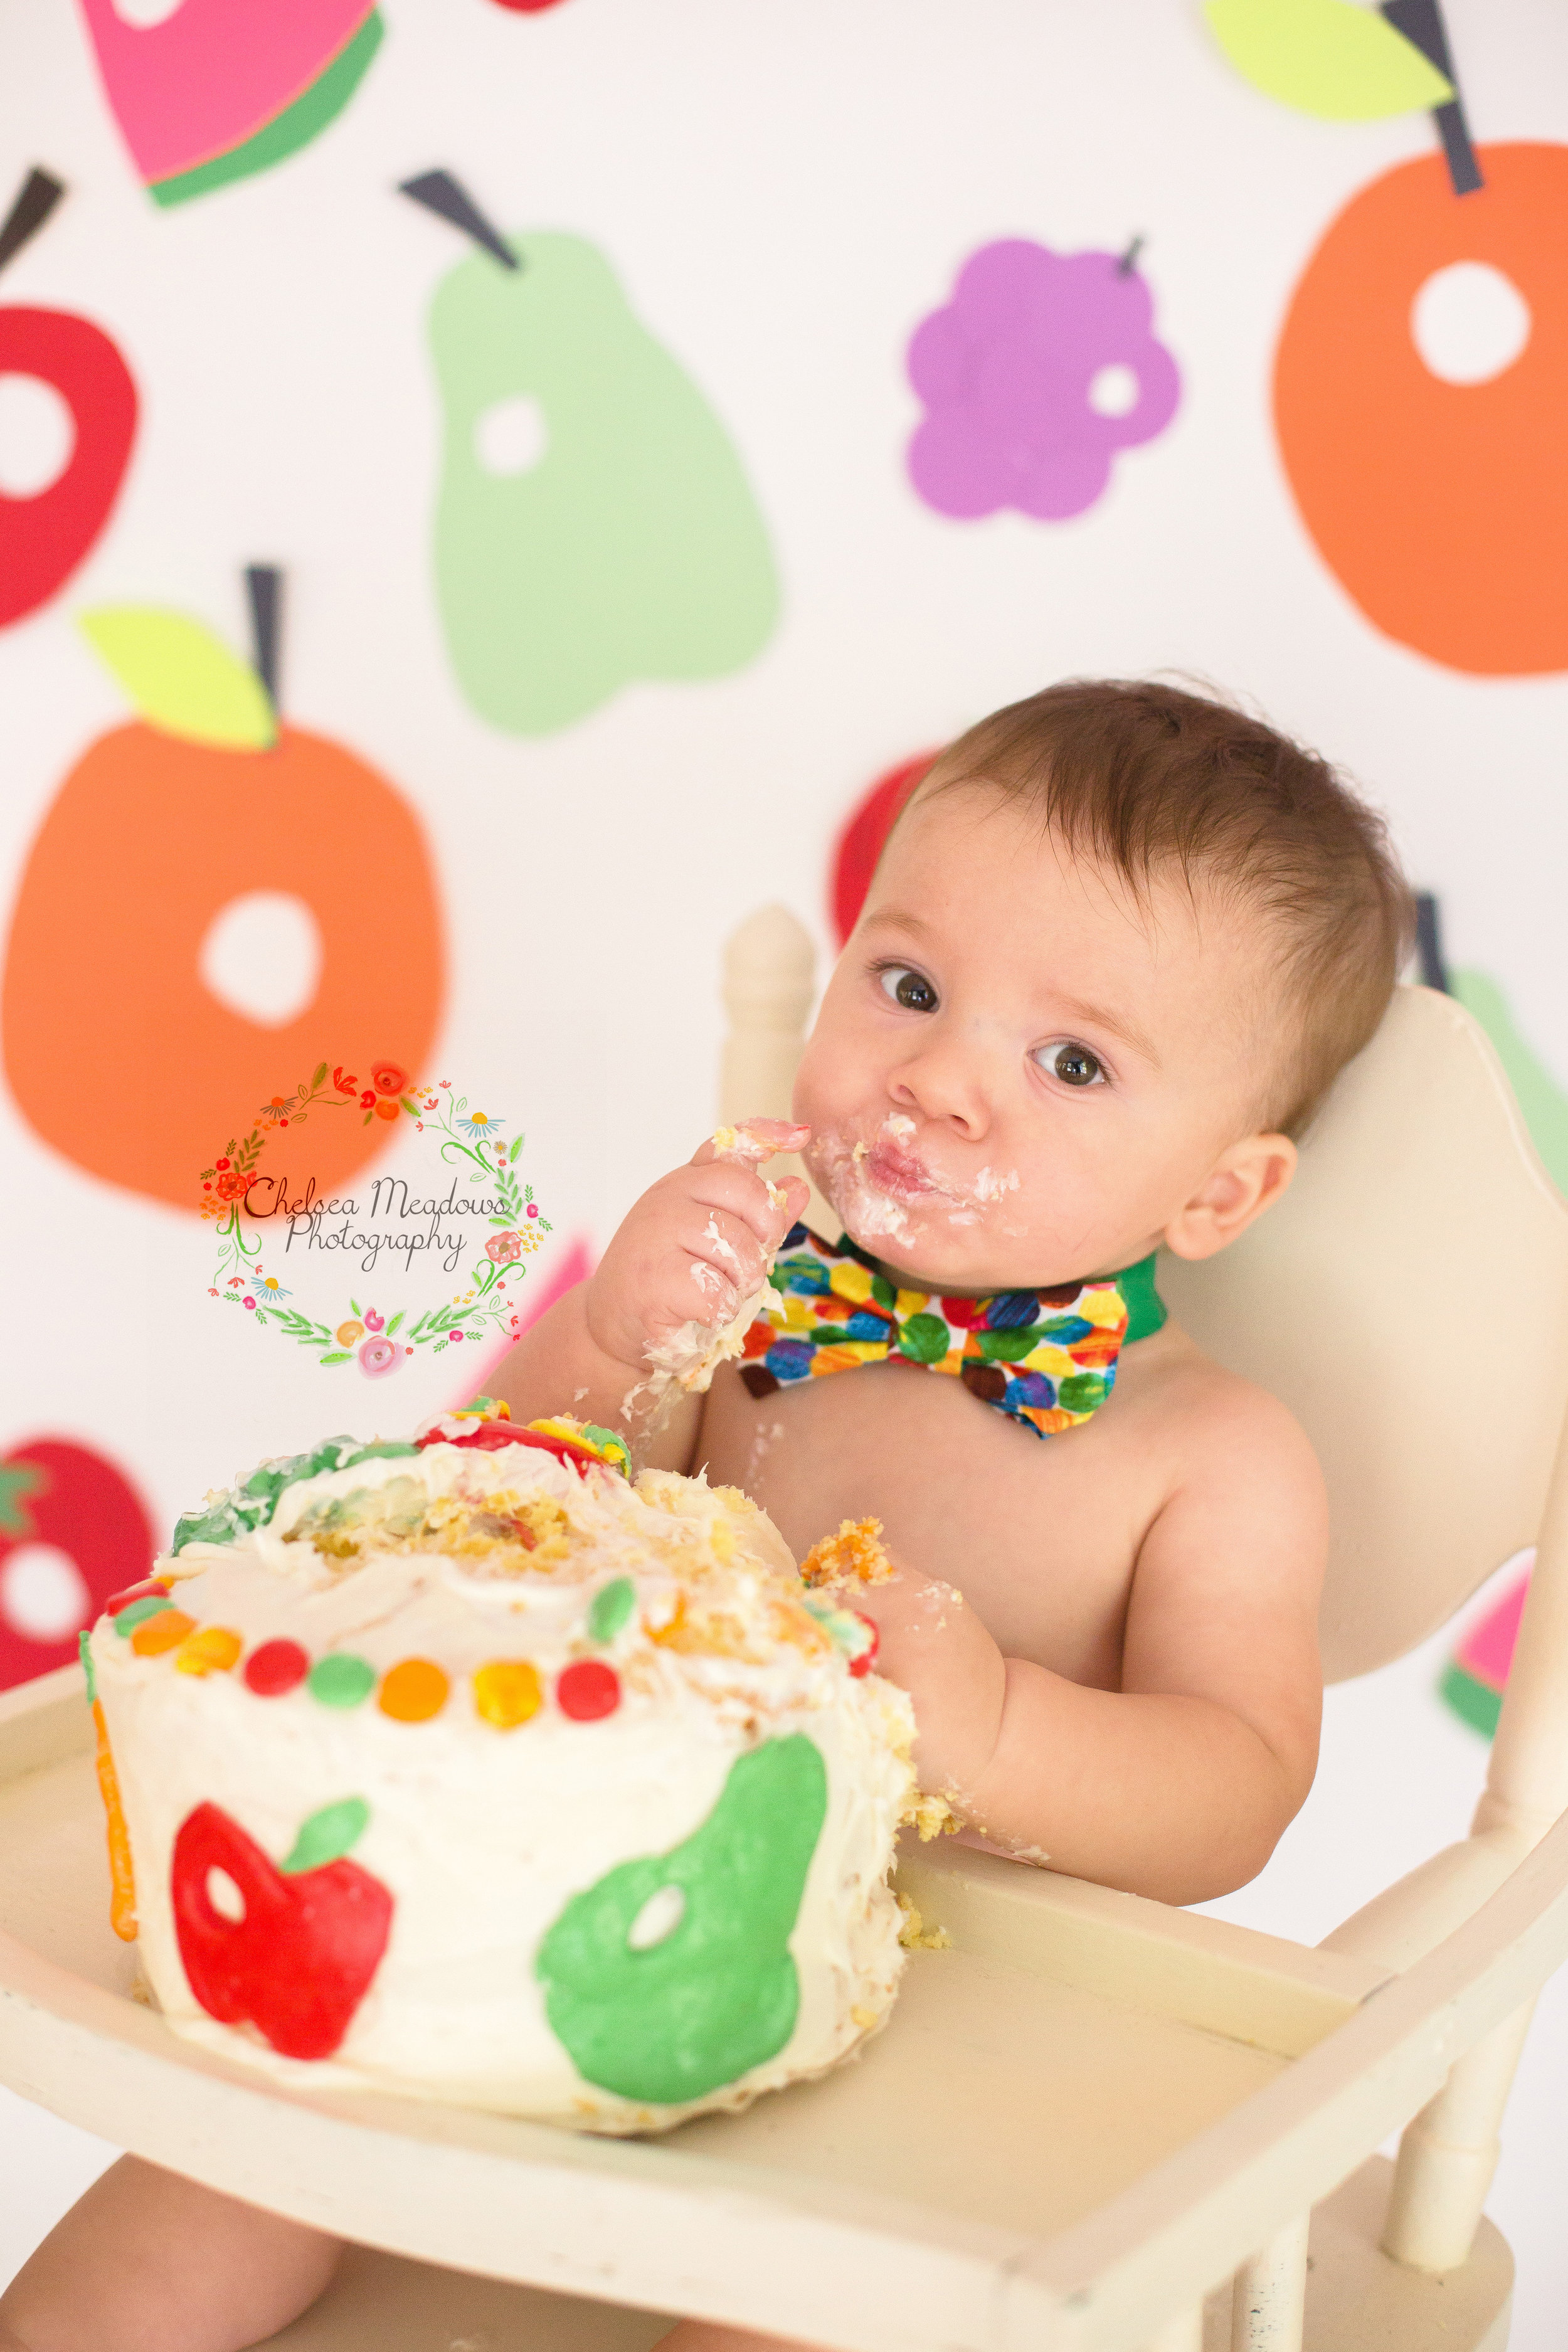 Vayden First Birthday - Nashville Family Photographer - Chelsea Meadows Photography (63).jpg